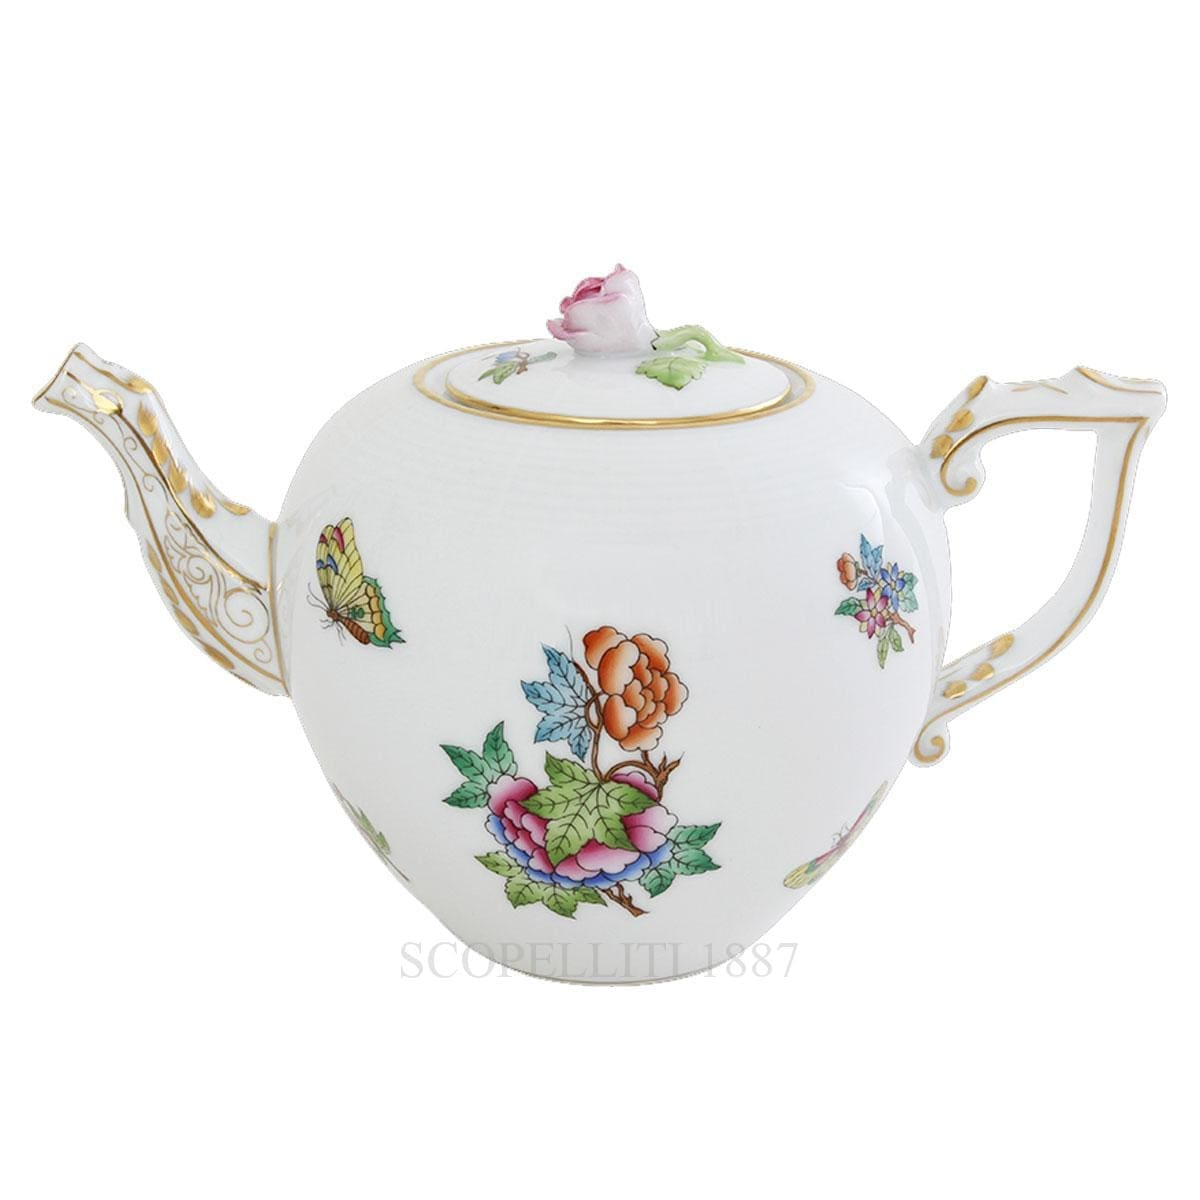 herend porcelain queen victoria teapot with rose